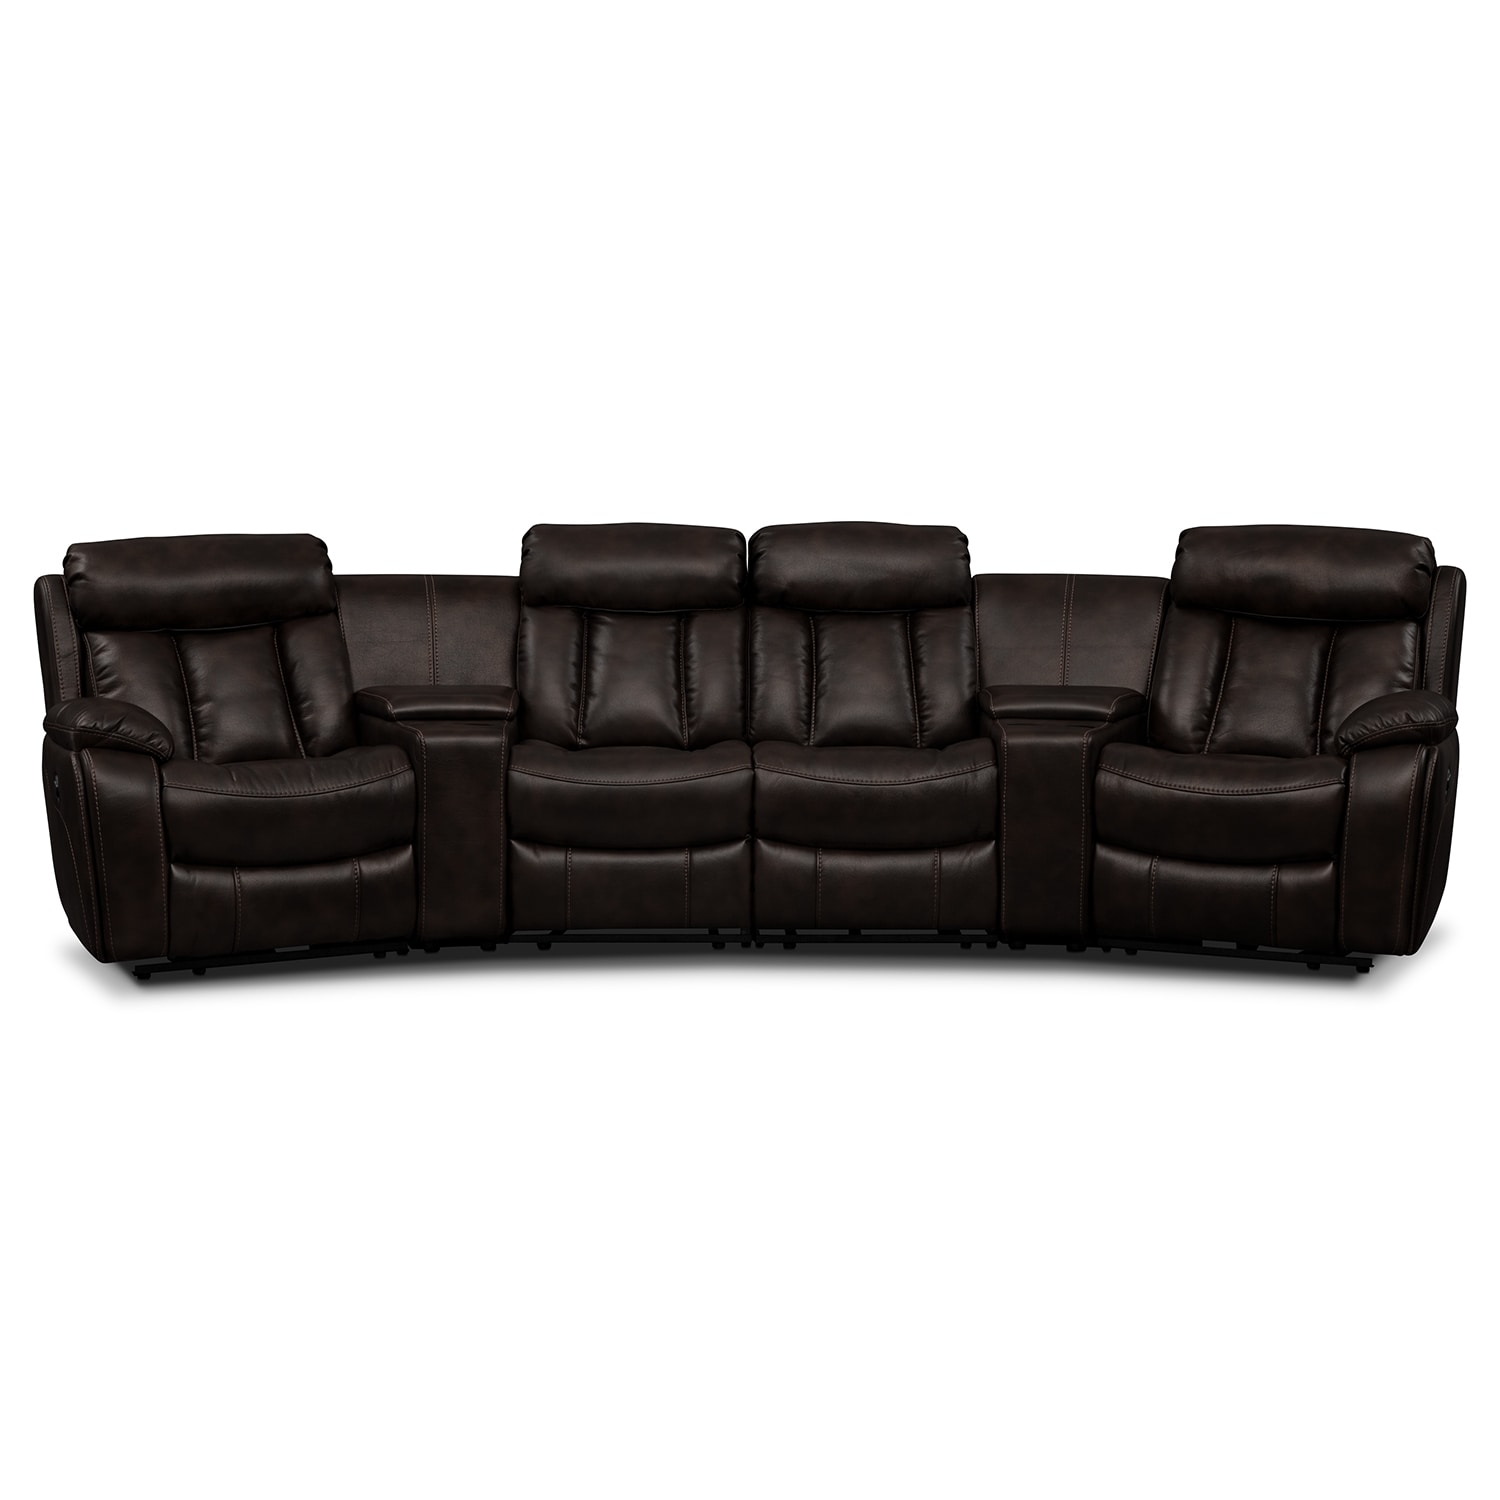 Living Room Furniture - Diablo 6 Pc. Power Reclining Sectional (Alternate II)